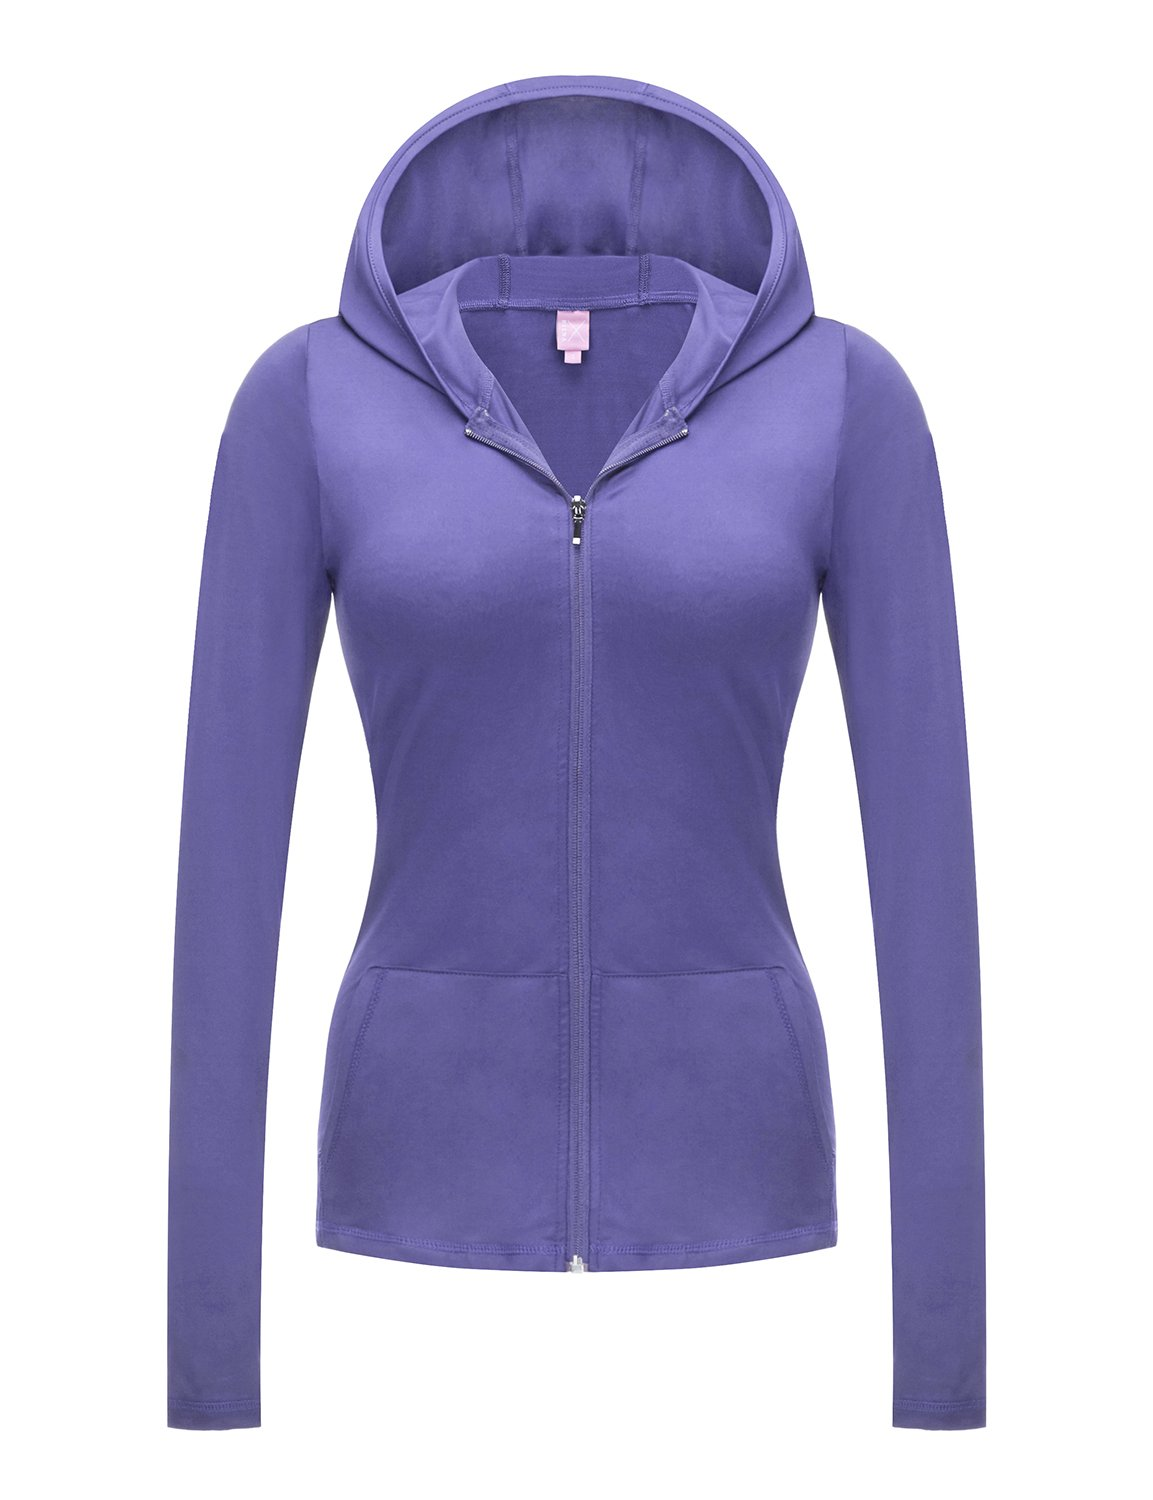 Regna X No Bother Women's Full Zip Front Running Workout Stretchy Track Jacket